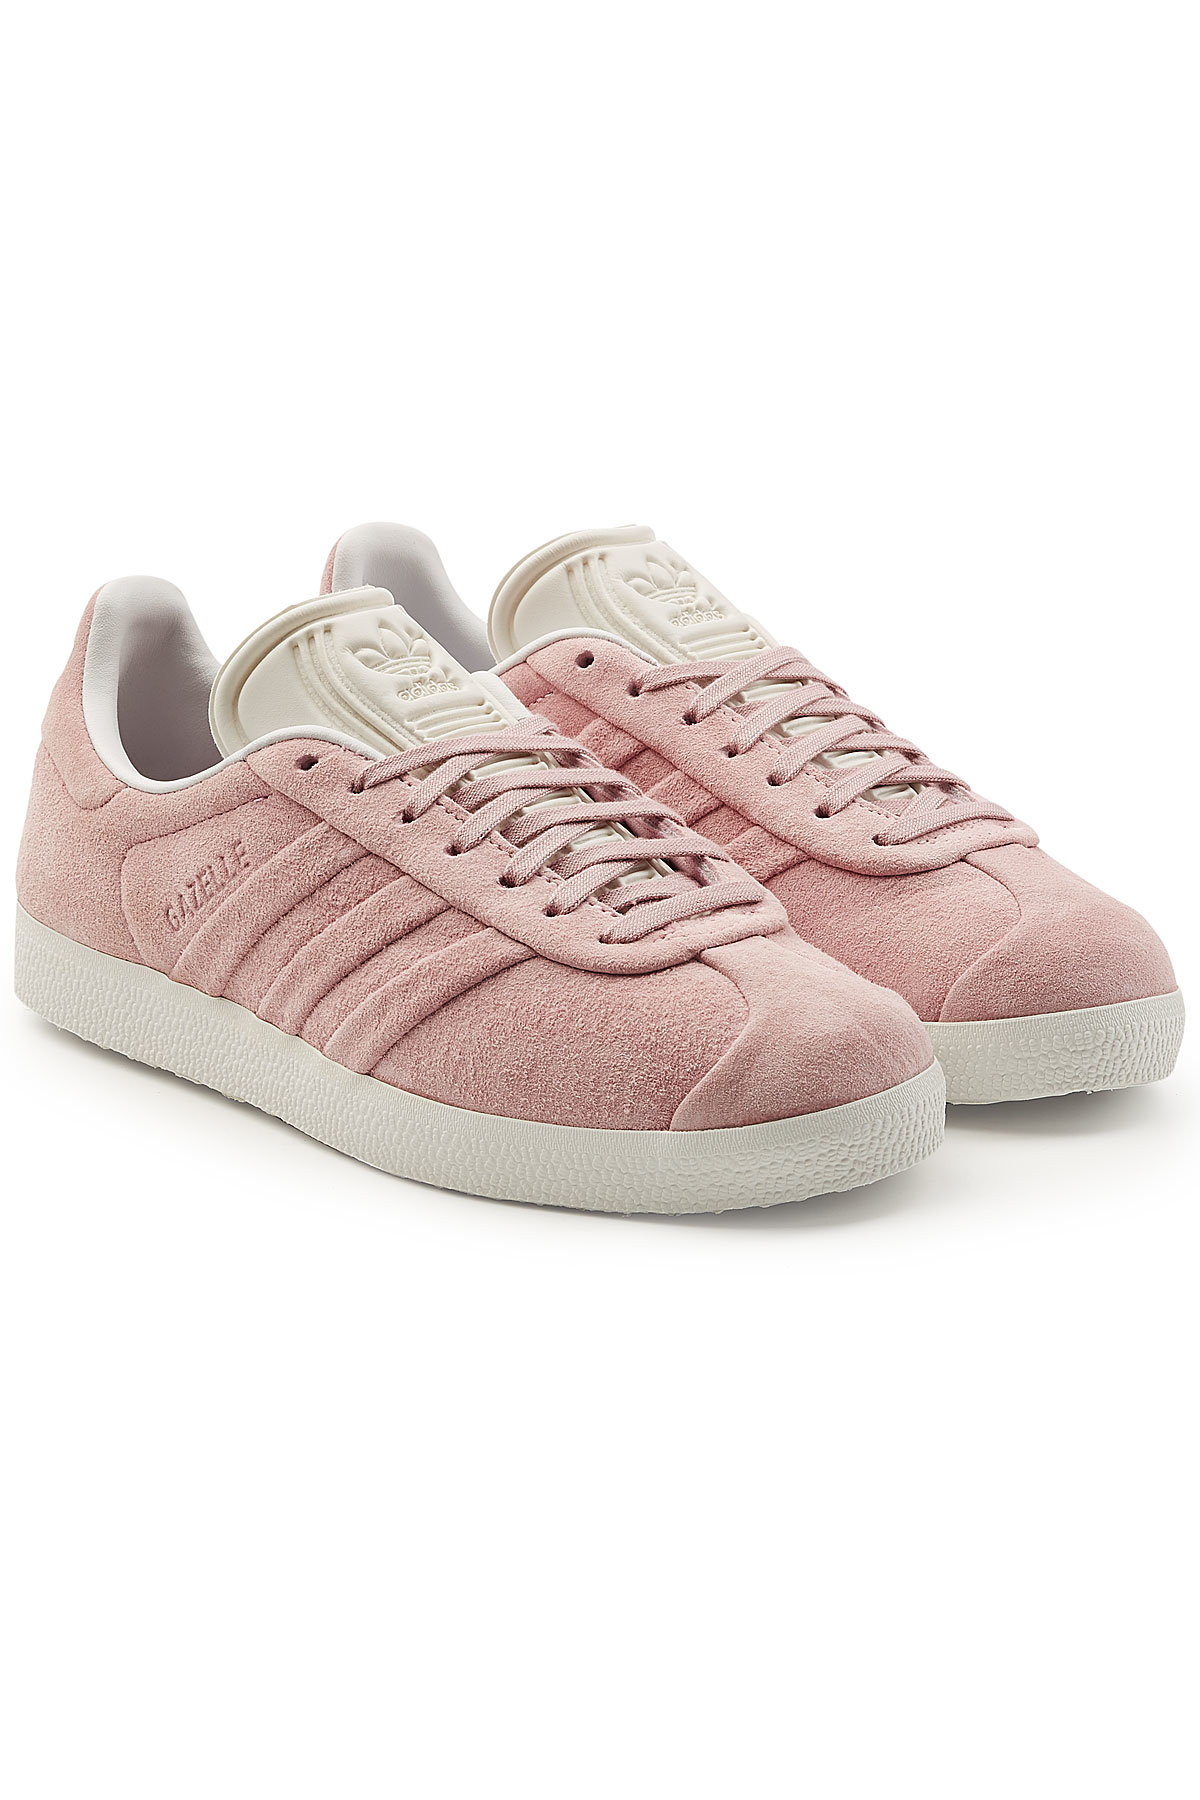 adidas Gazelle Stitch and Turn Suede Sneakers Gr. UK 7 D5adGyJnsA